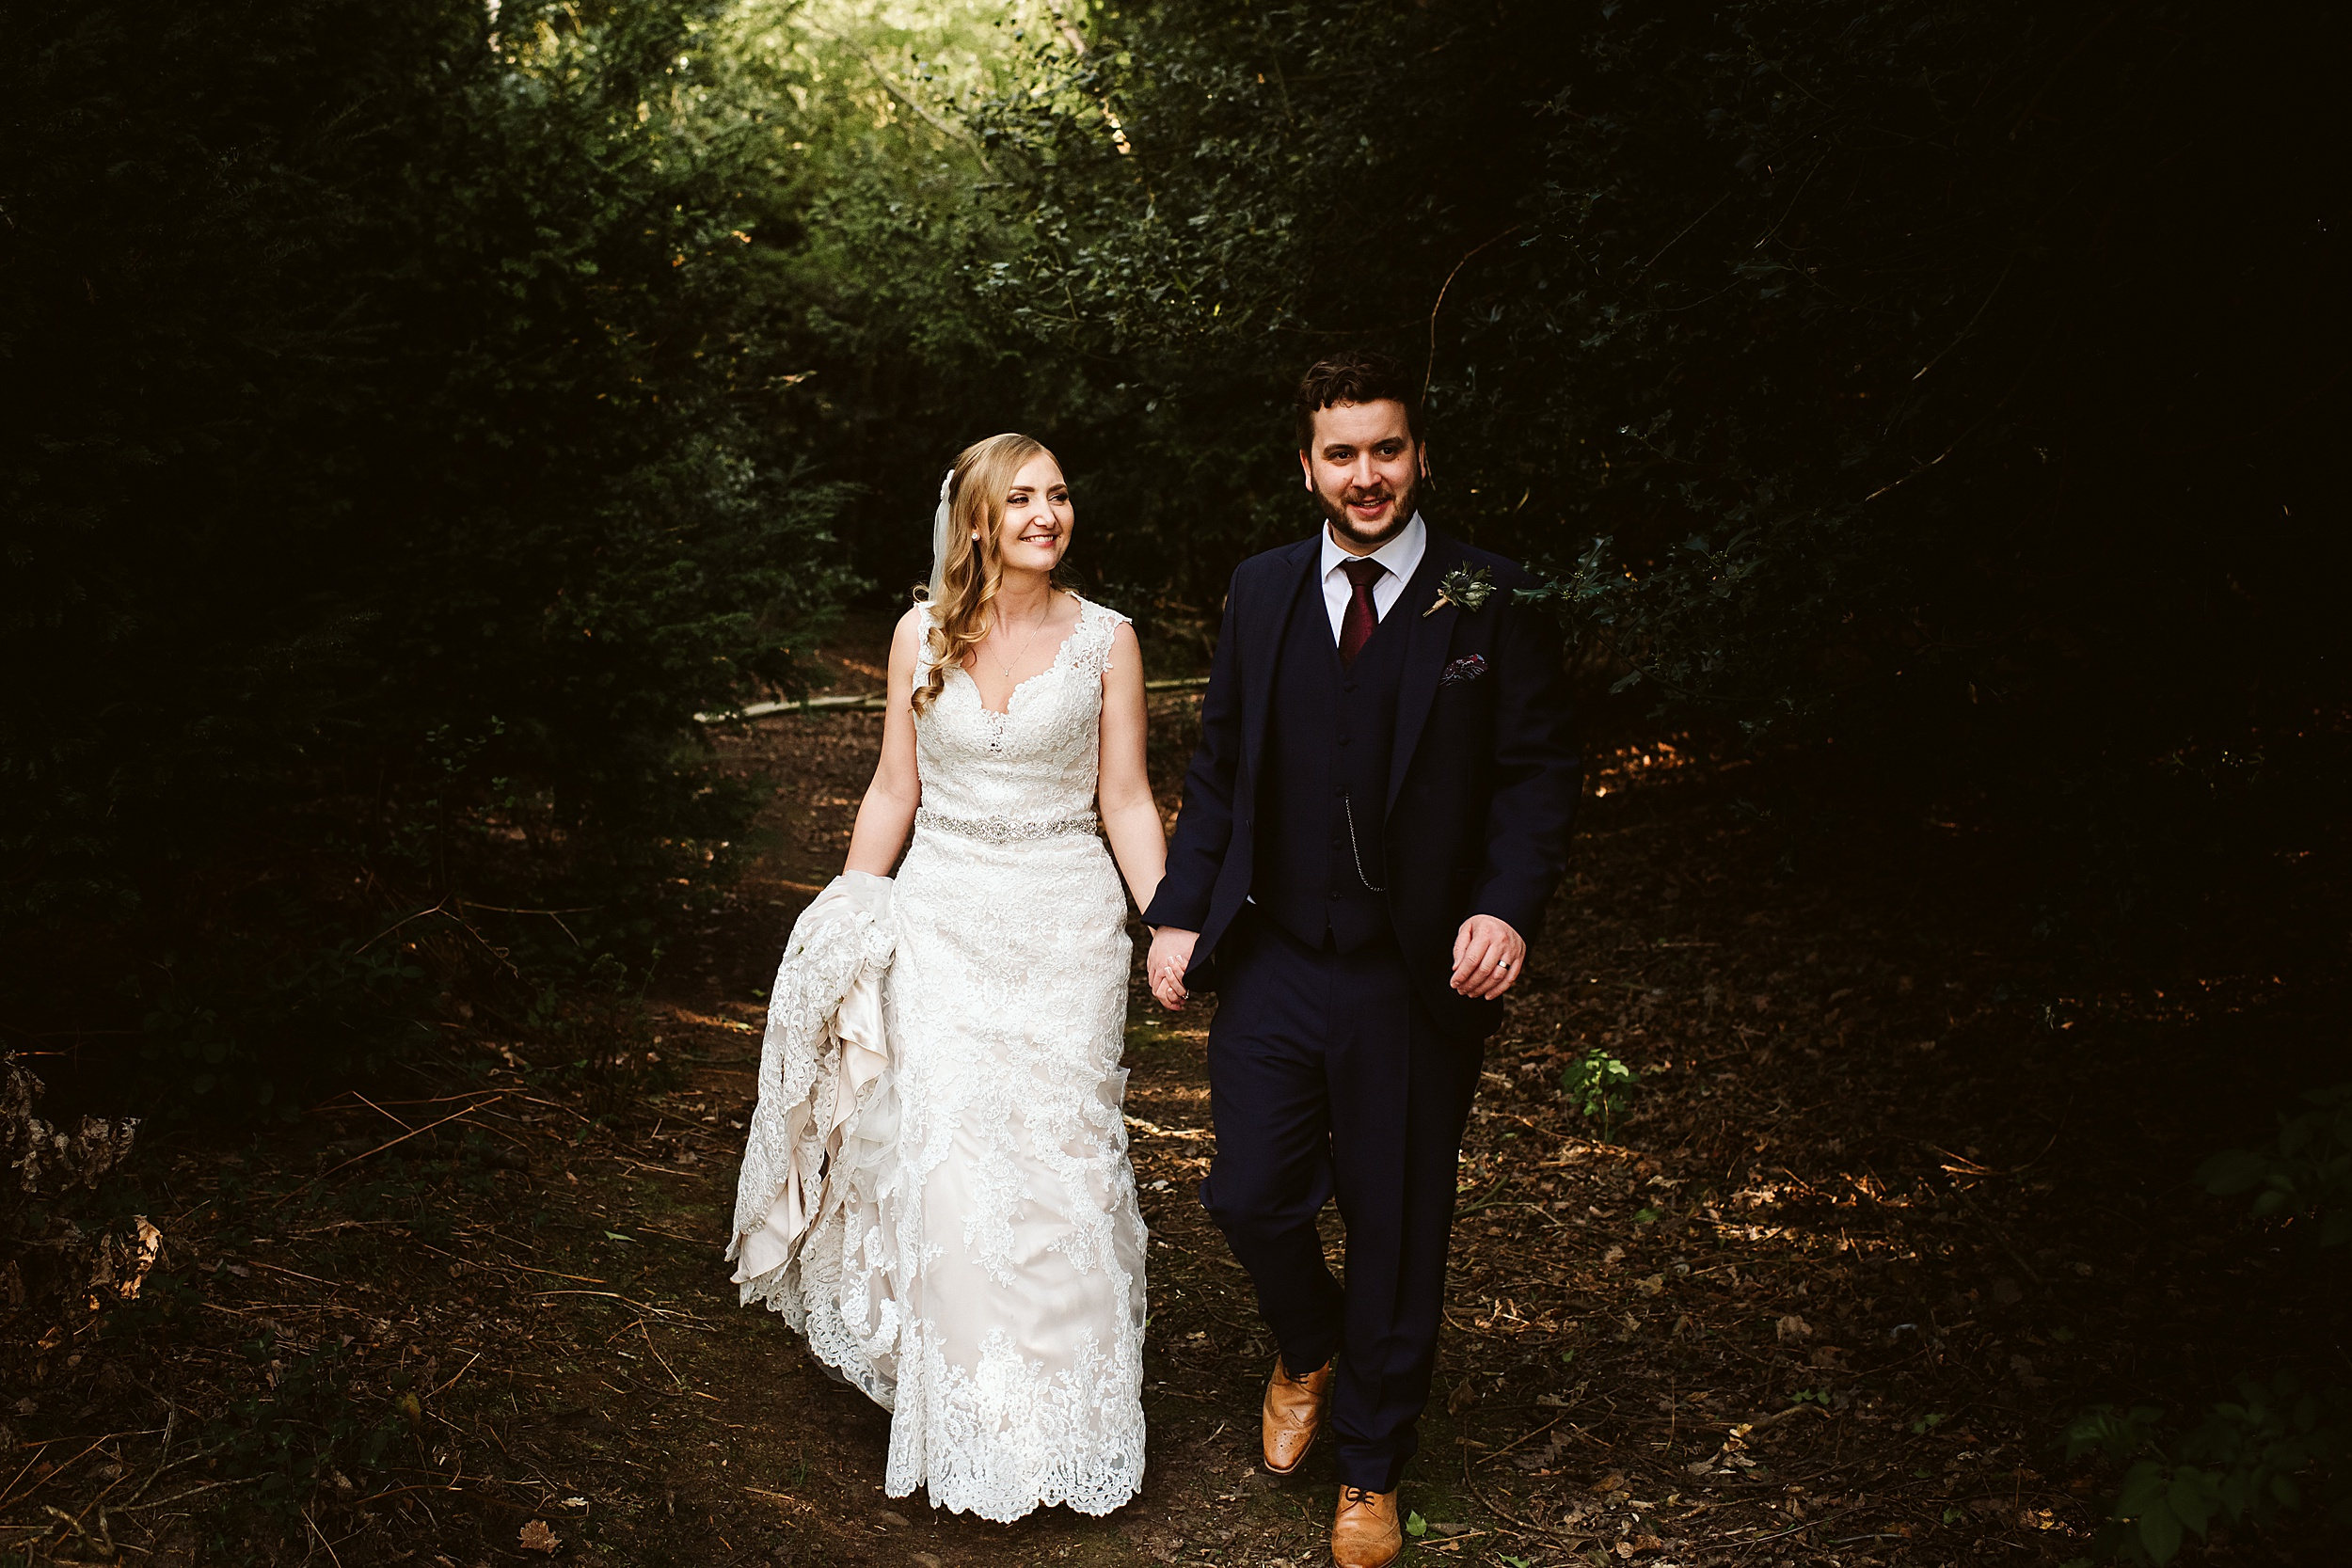 Peckforton_Castle_Cheshire_Toronto_Wedding_Photographer_UK_Destination_Wedding_0089.jpg